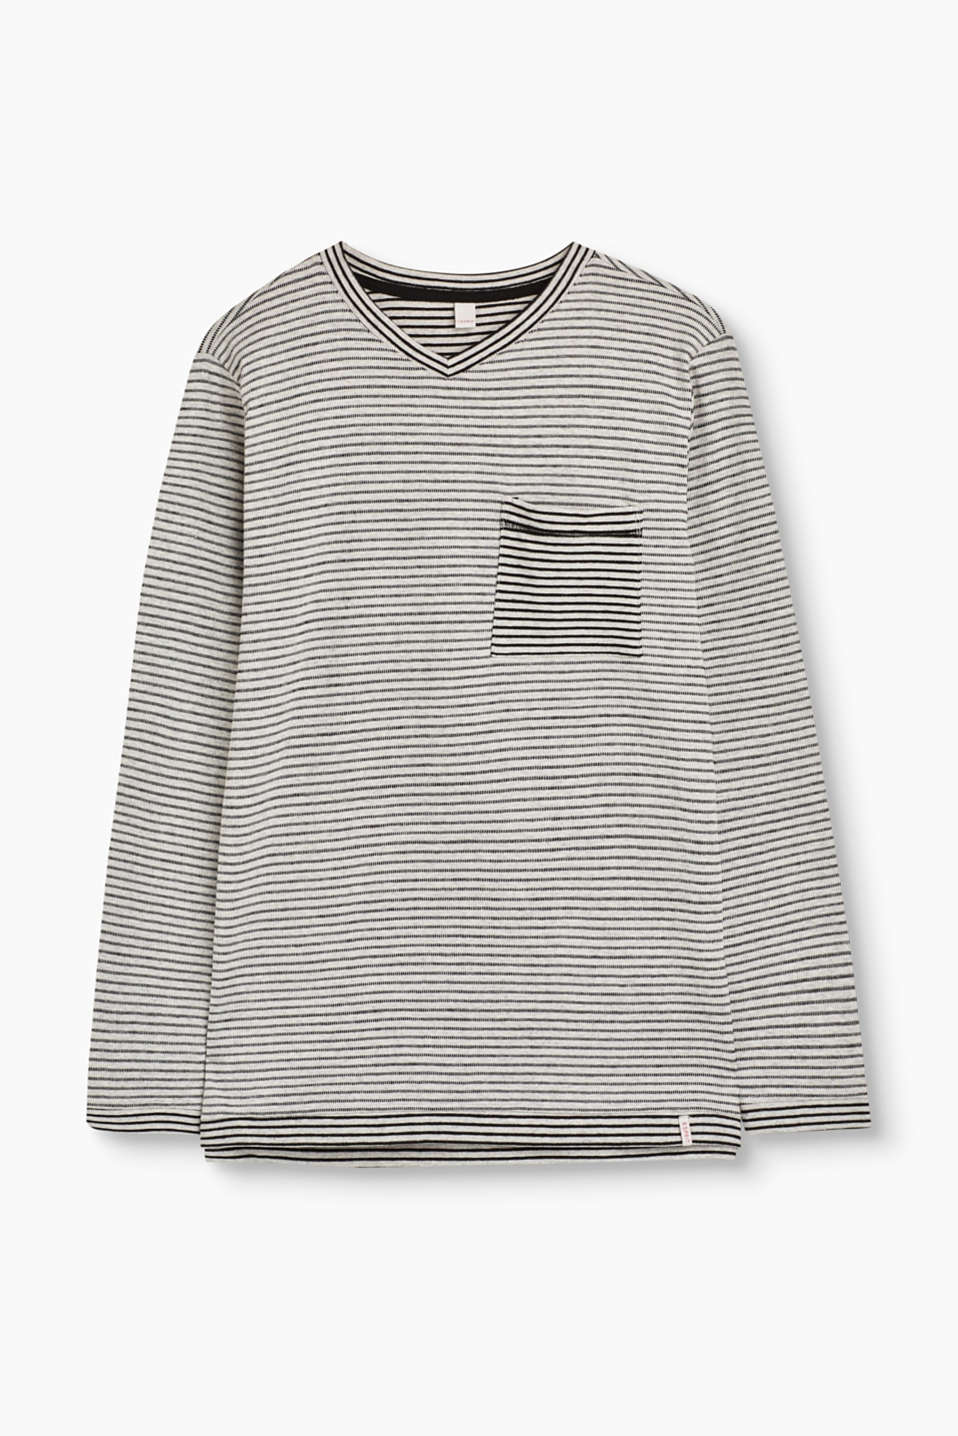 Esprit - Striped long sleeve top + breast pocket